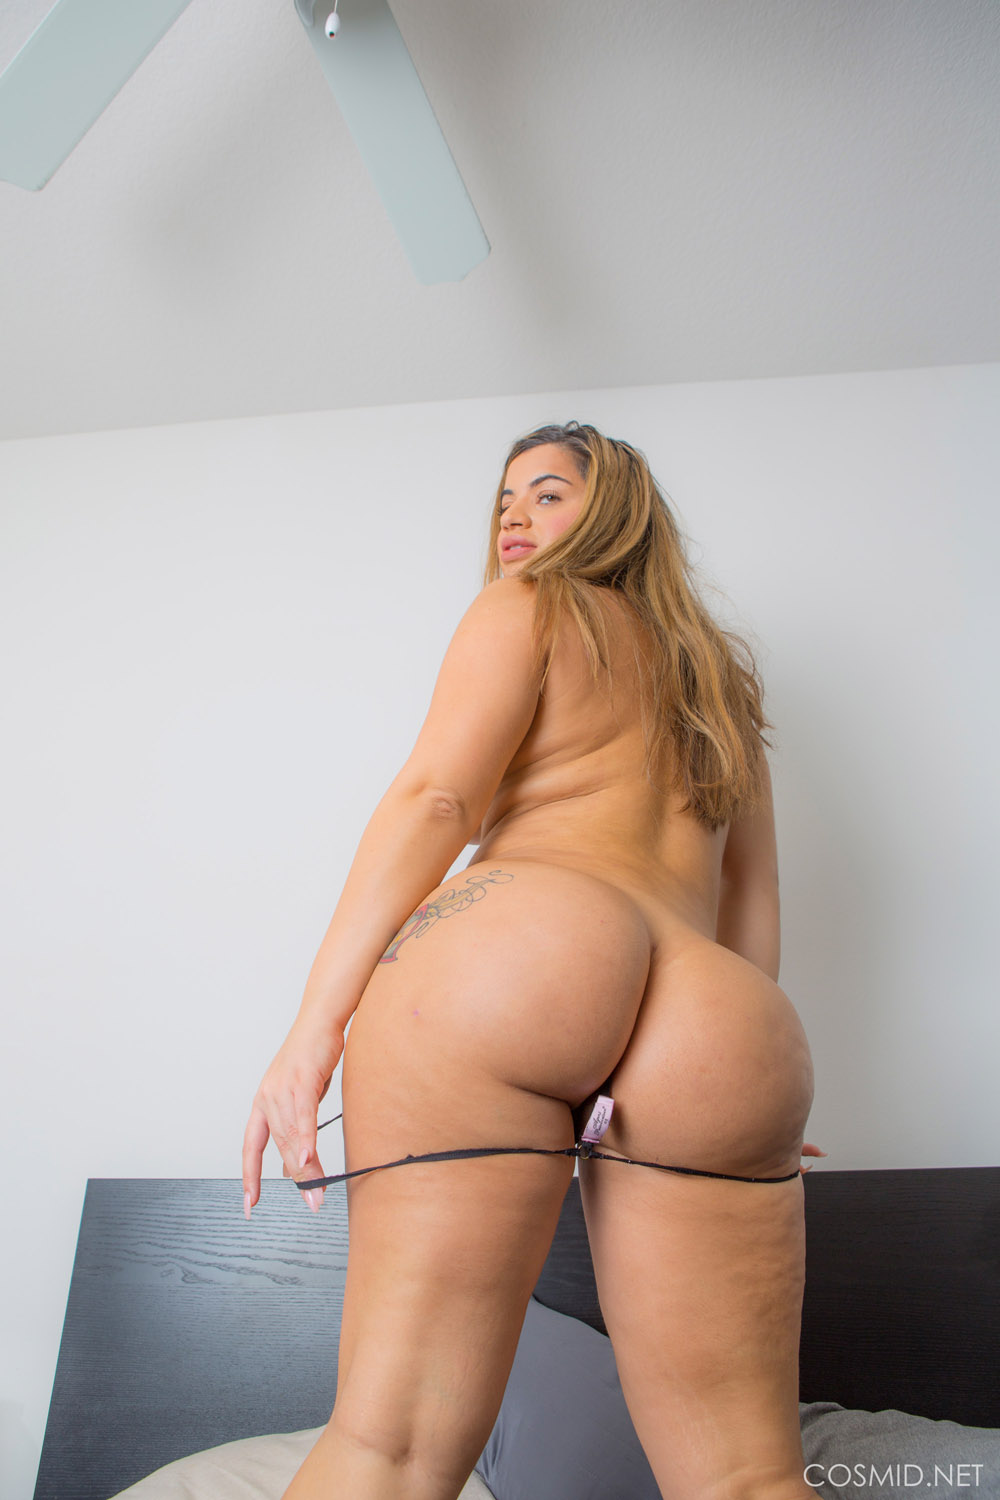 Ana martin big boobs and barbara fucked in kitchen a75 - 1 part 7